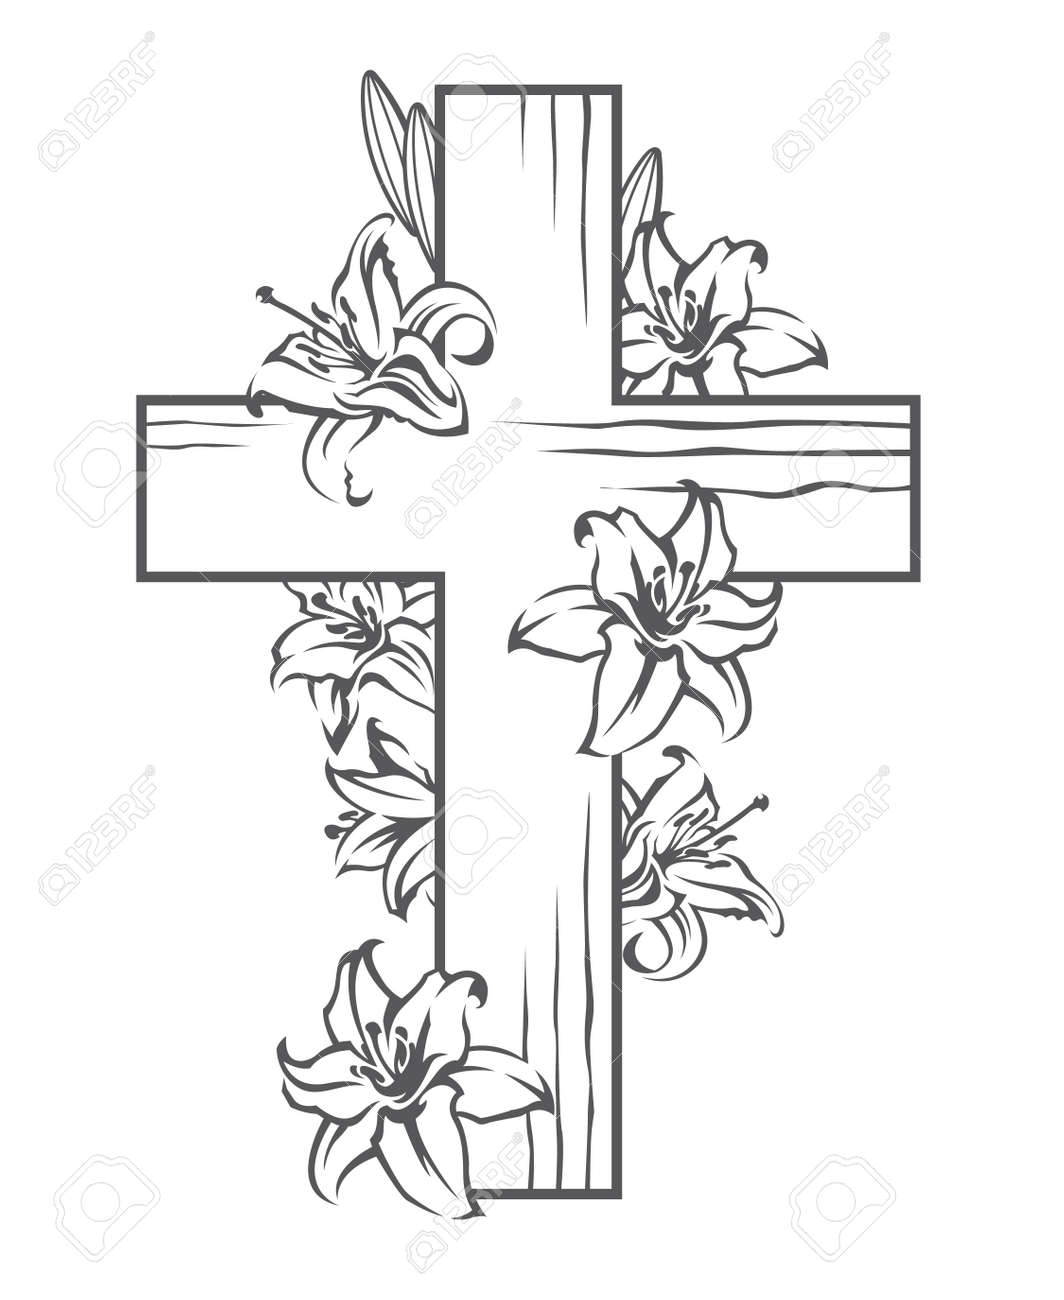 Christian cross stock photos royalty free business images floral image with cross and blooming white lilies christian symbol biocorpaavc Image collections